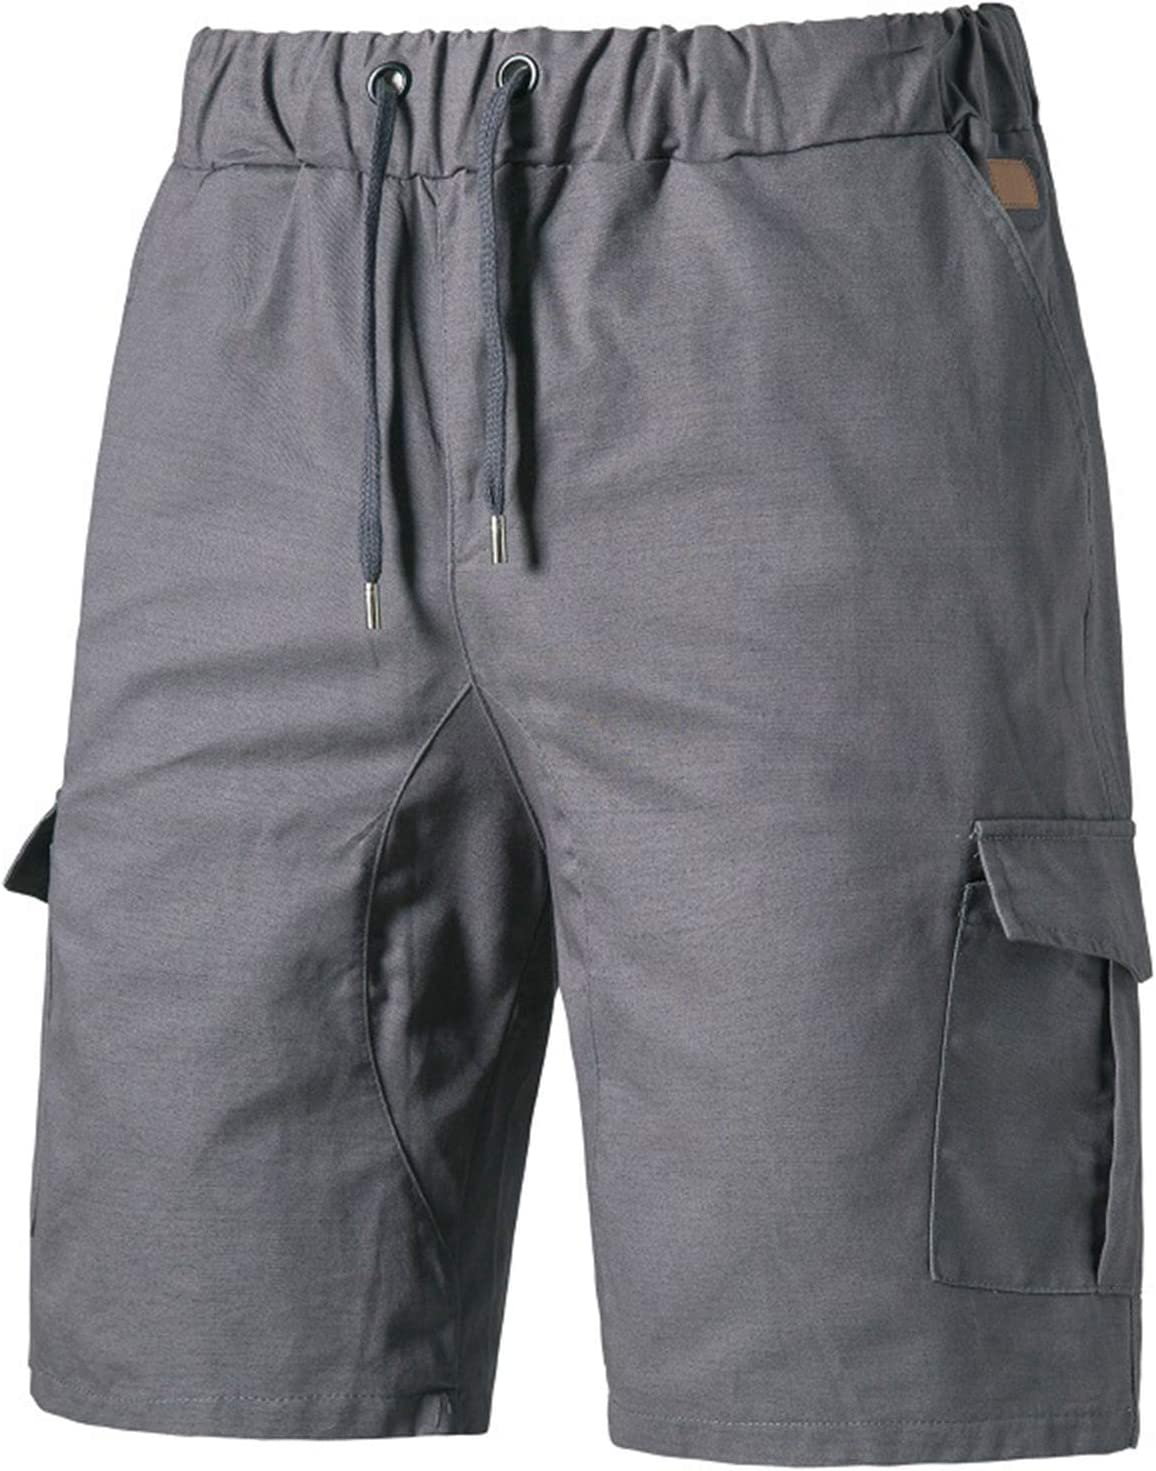 WEHOMEO Cargo Shorts for Men, Relaxed Fit Work Shorts,Gray,XXL